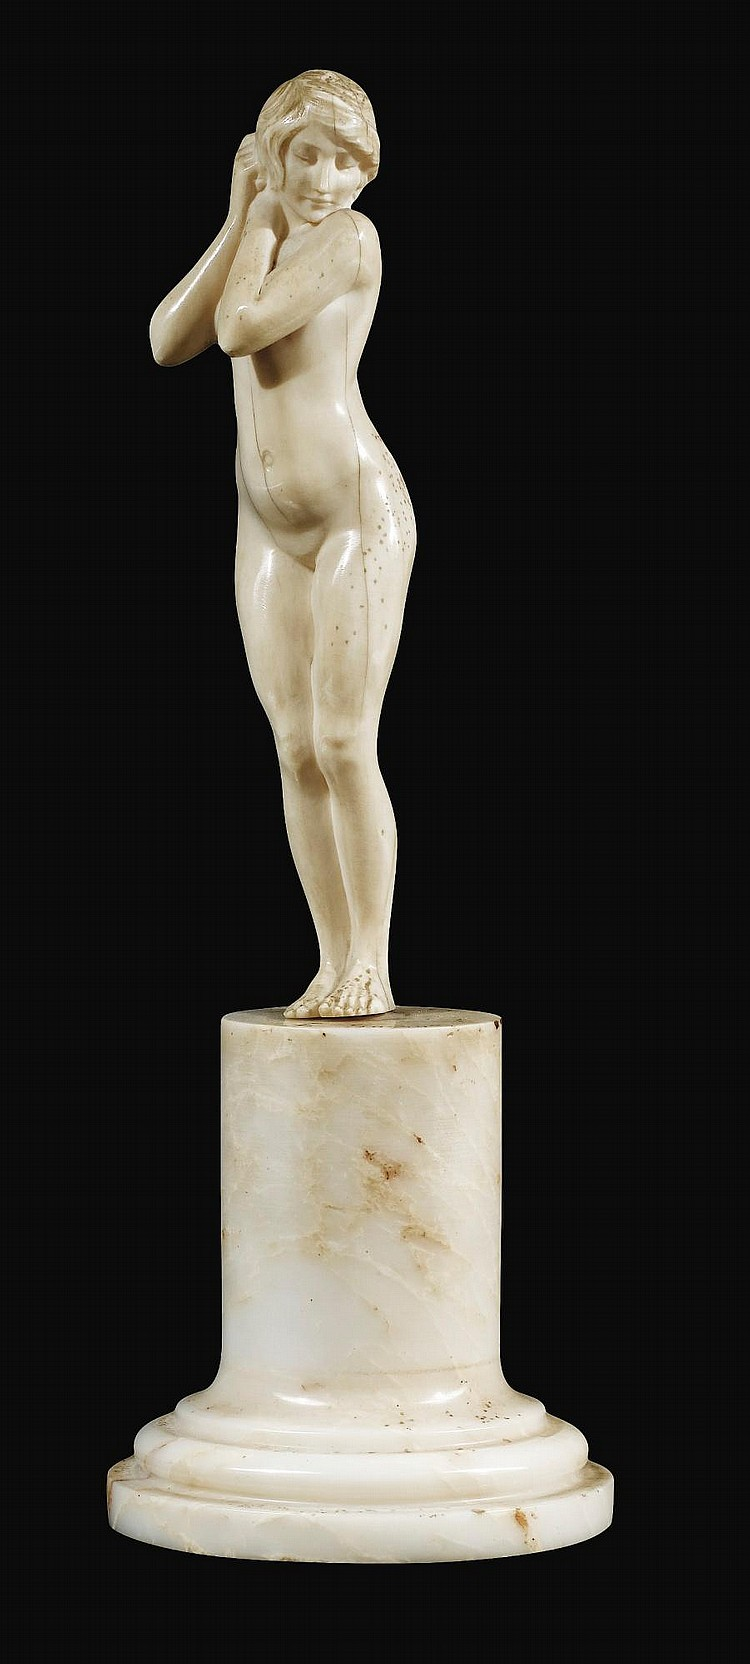 AN IVORY FIGURE OF A YOUNG STANDING BATHER, LOUIS SOSSON, CIRCA 1900 | An ivory figure of a young standing bather, Louis Sosson, circa 1900